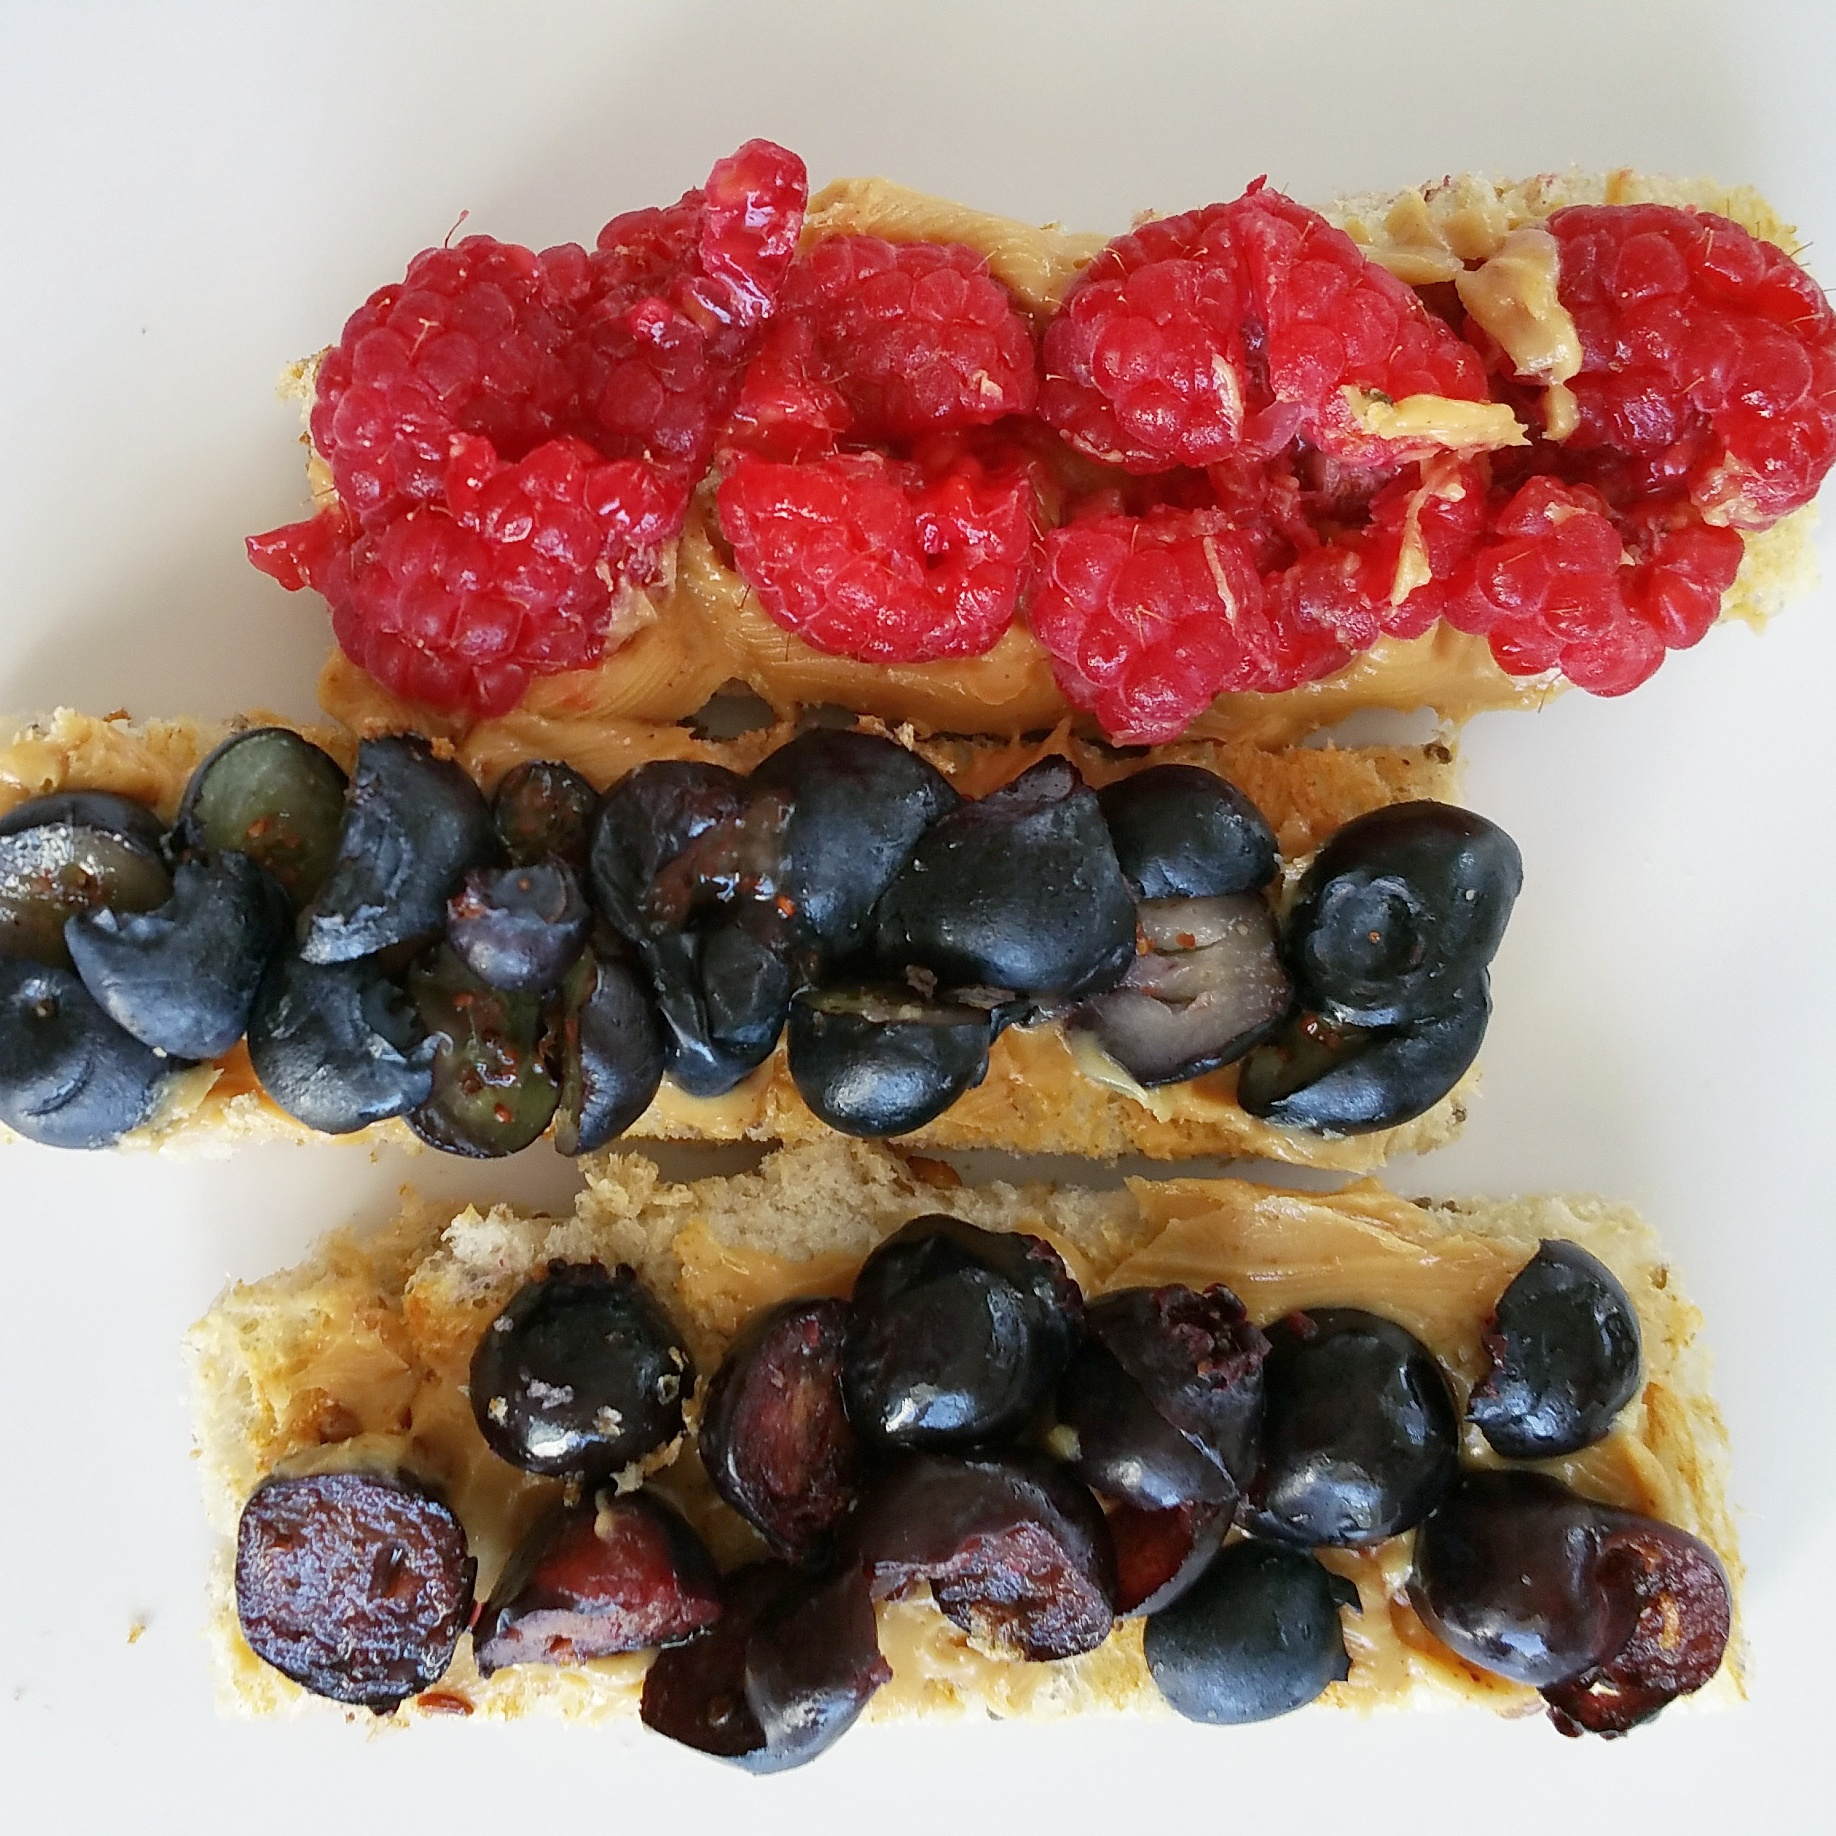 sprouted grain toast with nut butters and fruit